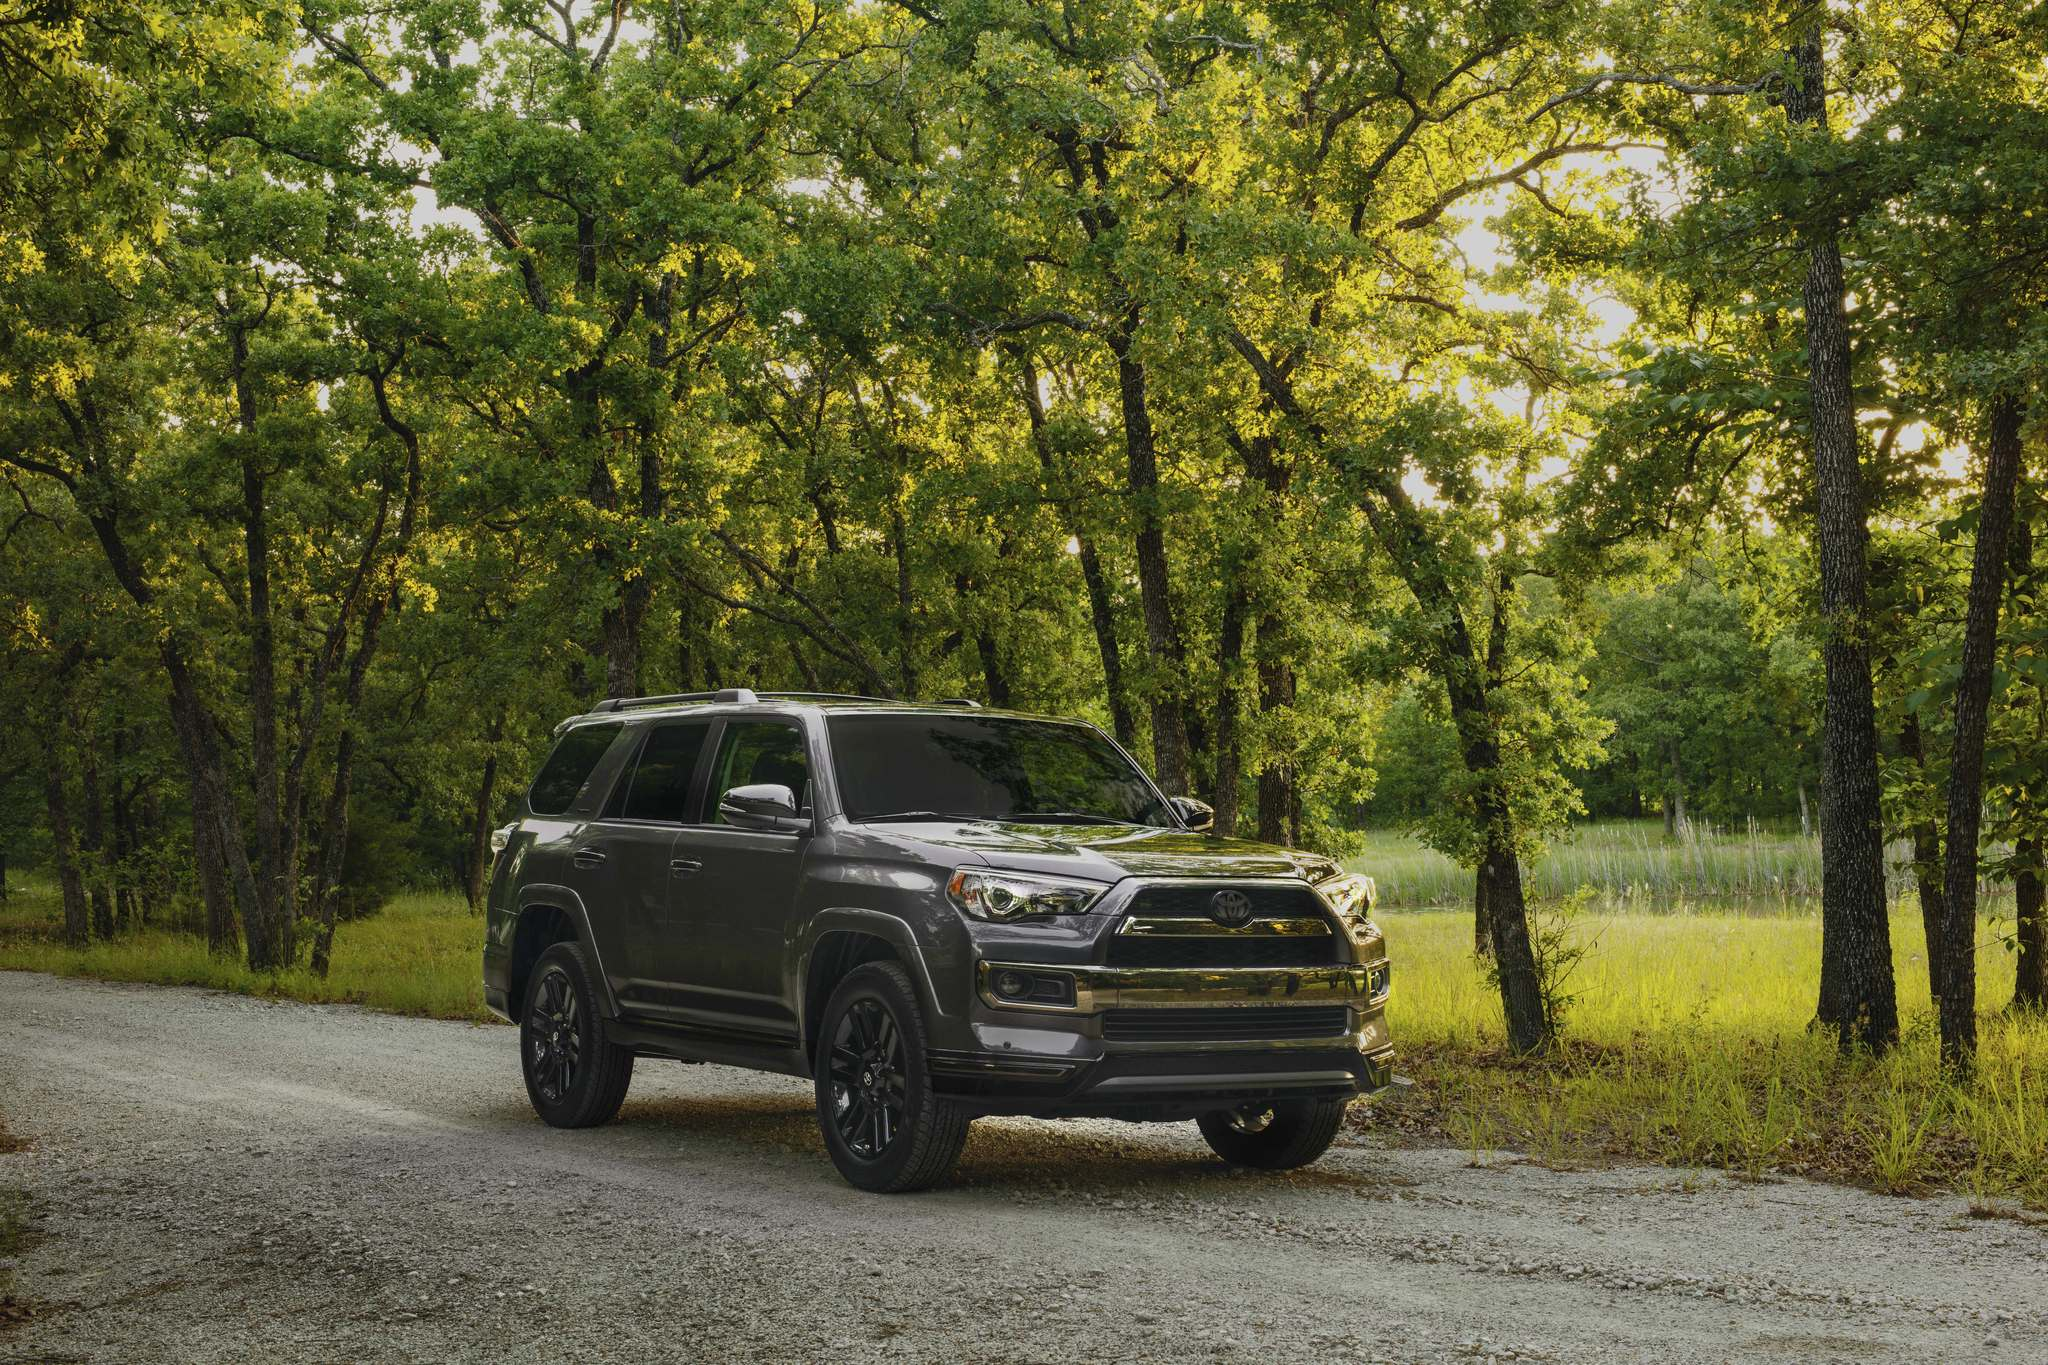 ToyotaThe ability to dig a little deeper into the forest than the competition is the key reason why the Toyota 4Runner remains one of Free Press Autos editor Willy Williamson's favourite vehicles.